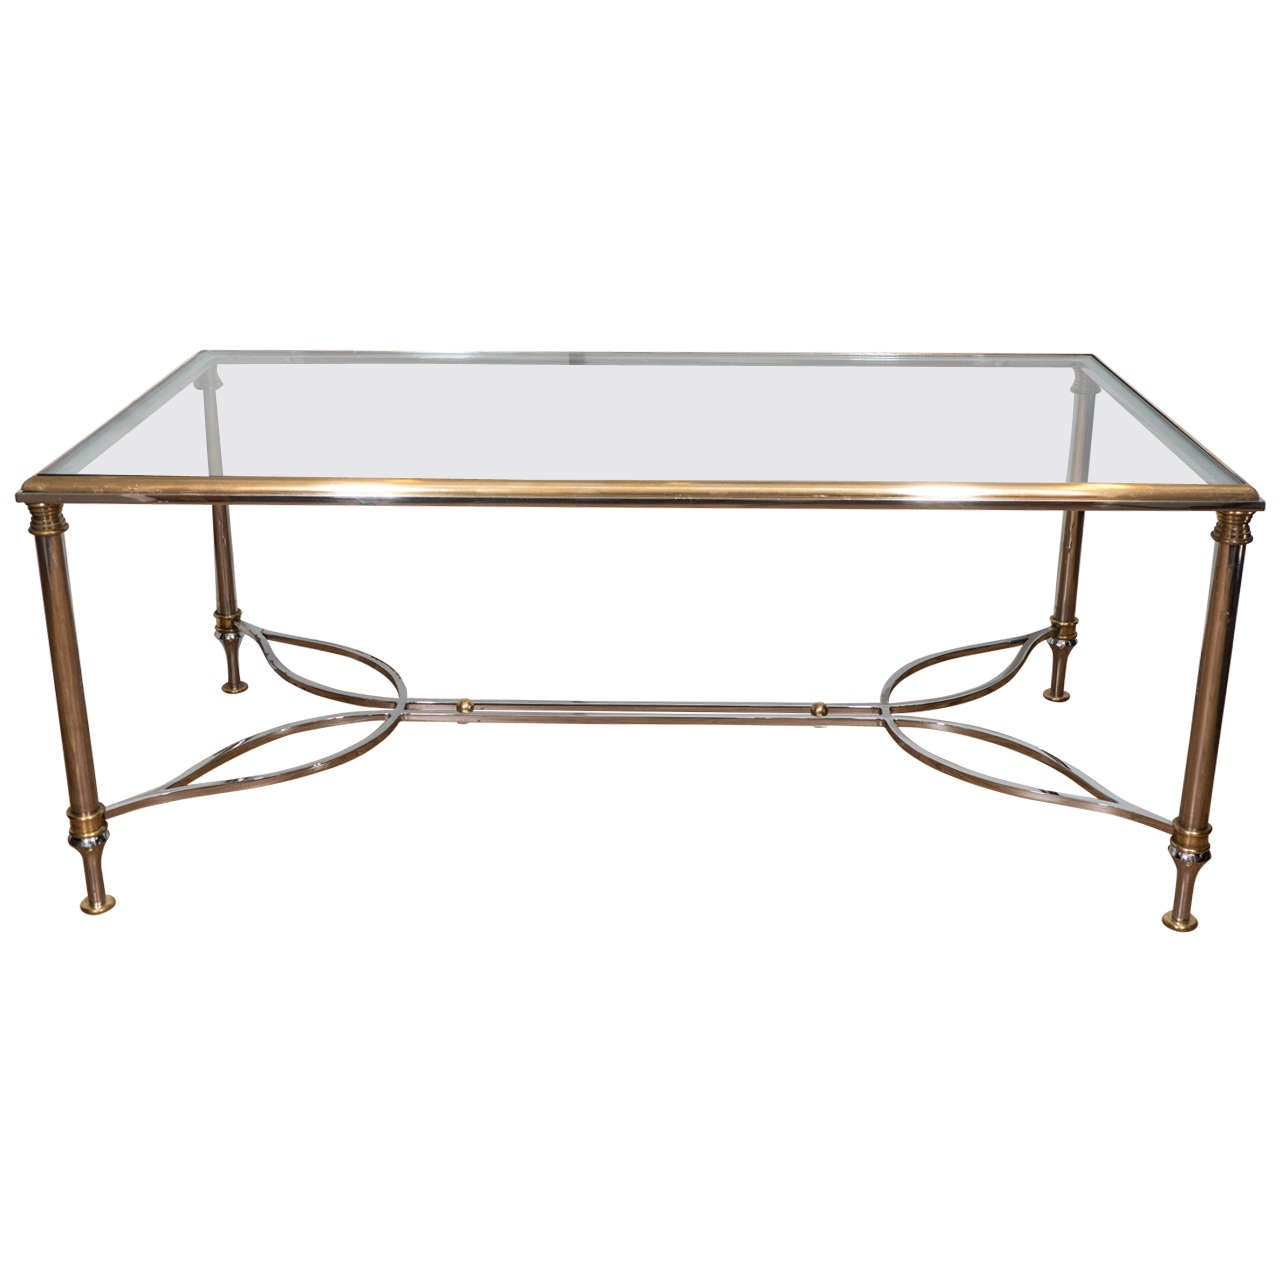 1970s Brass Rectangular Coffee and Cocktail Table with Elegant Chrome Base